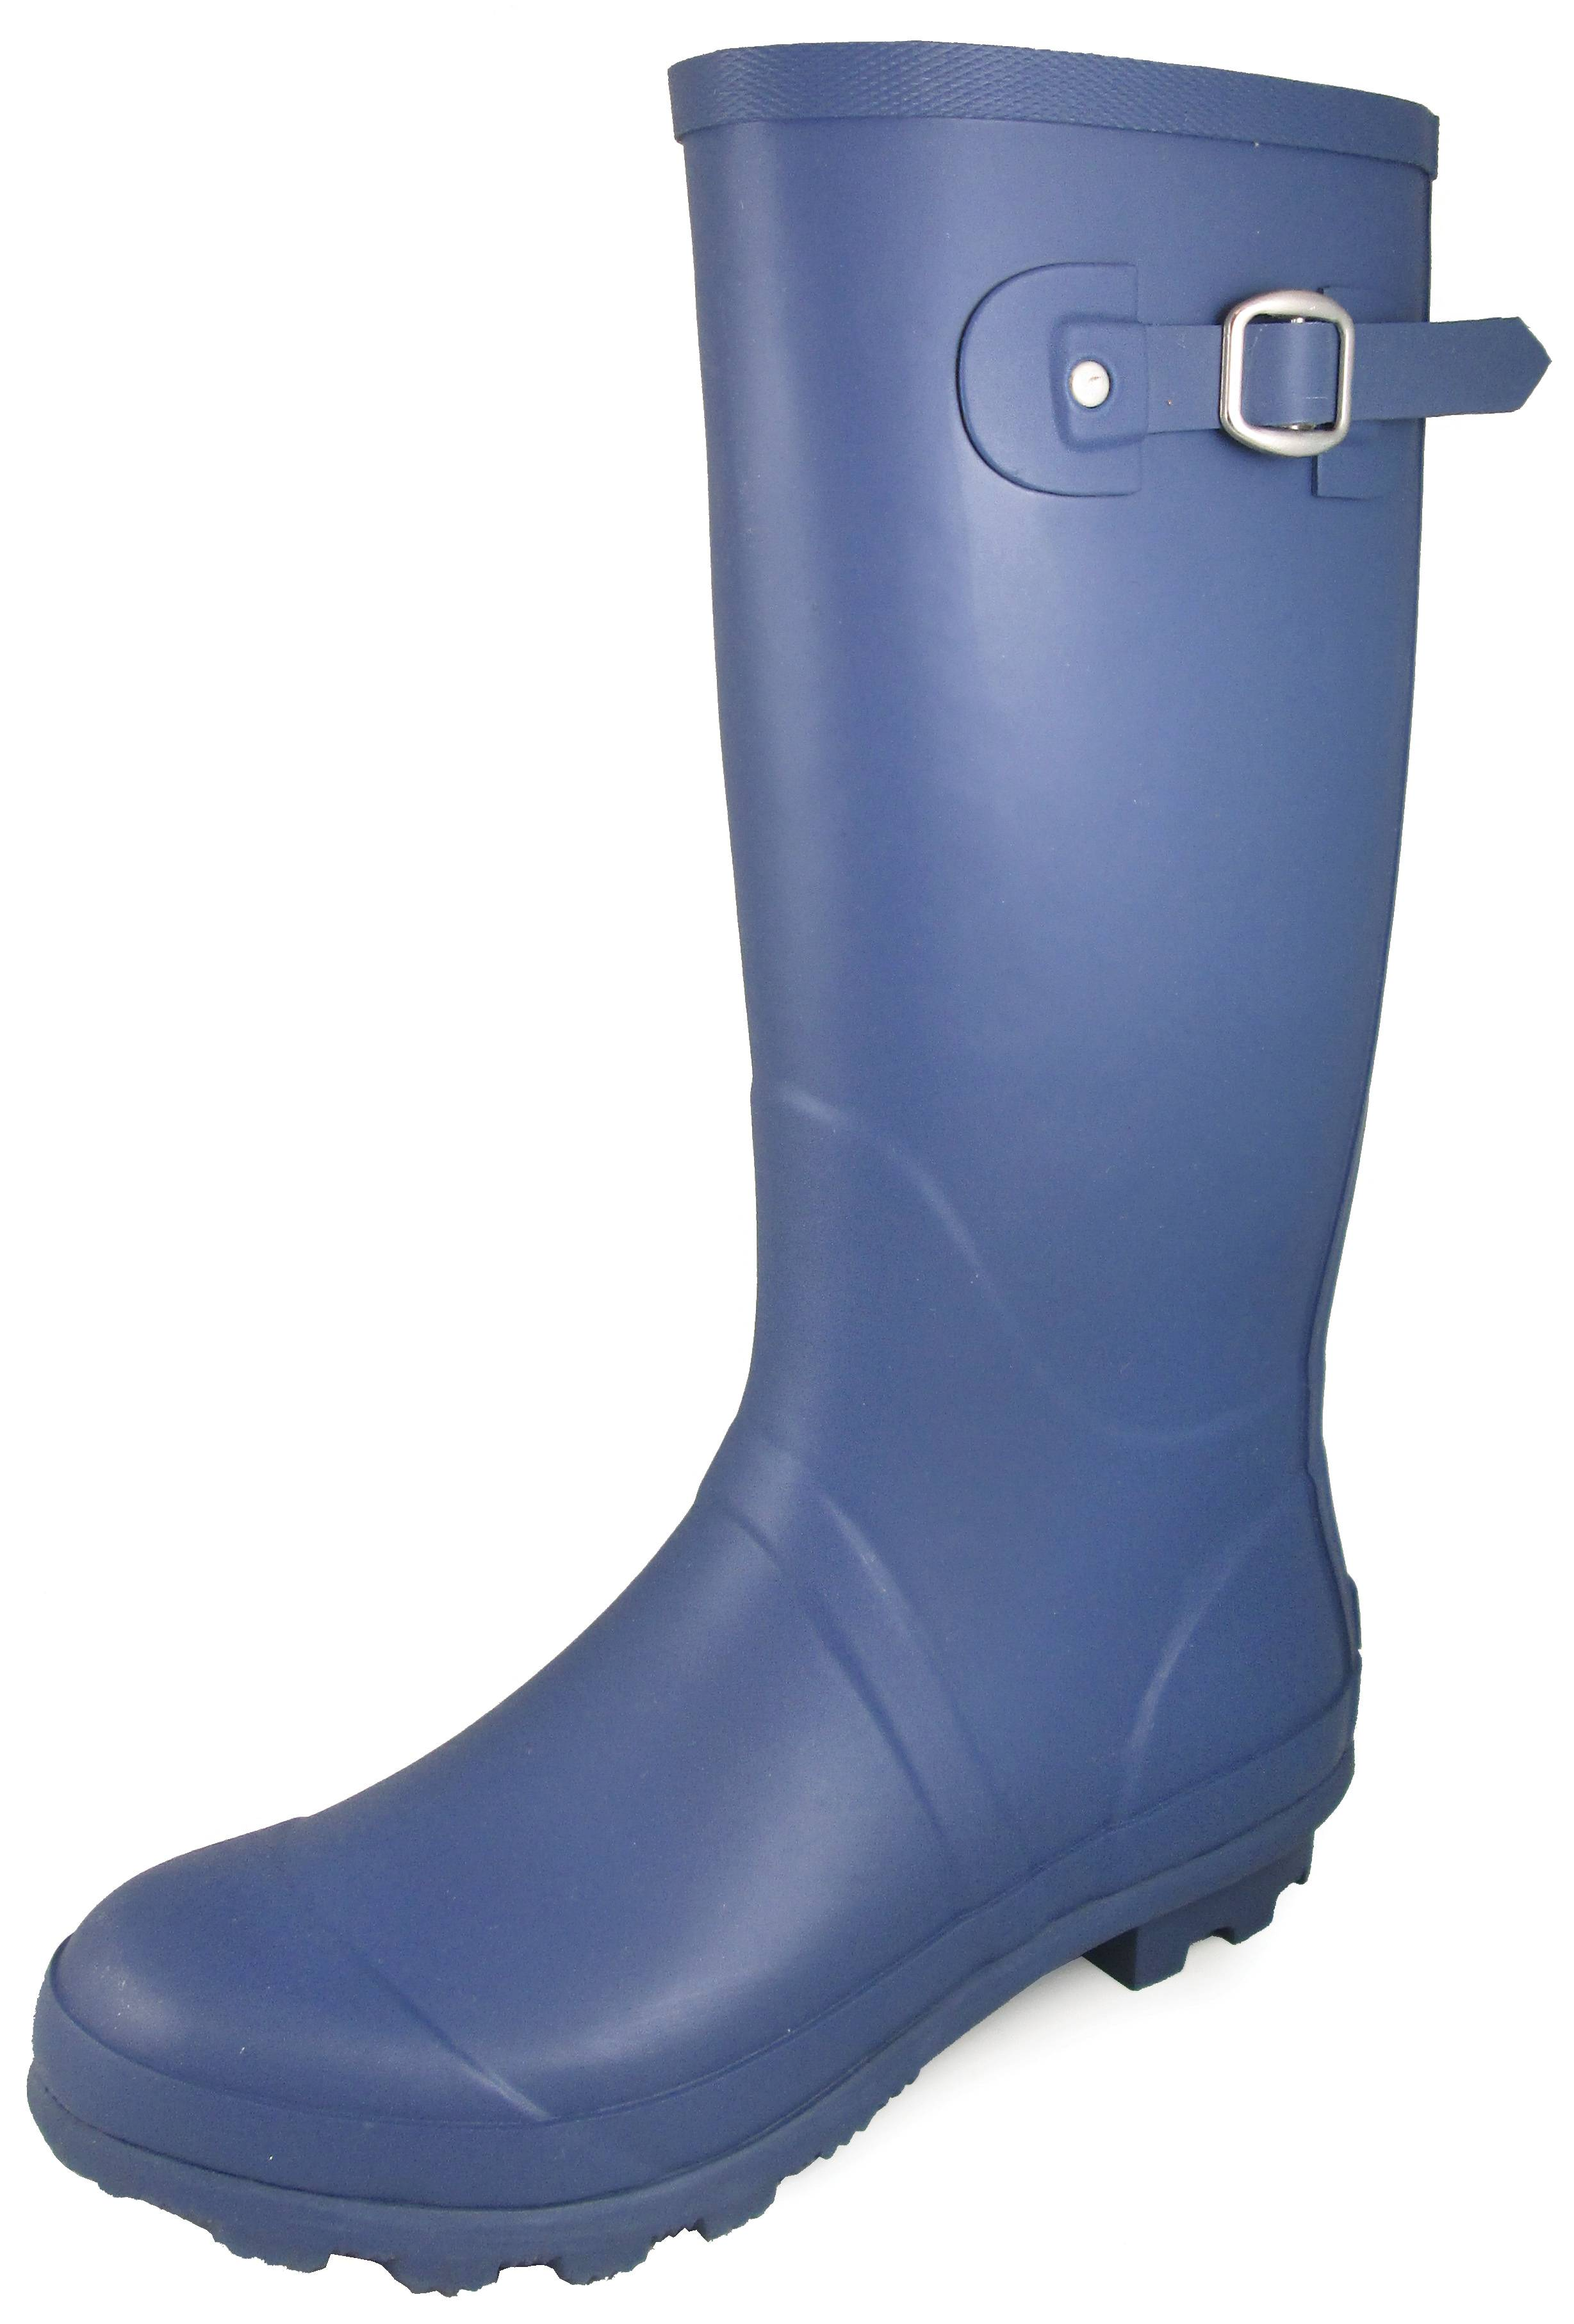 Smoky Mountain 13-inch Rubber Boots - Ladies - Blue